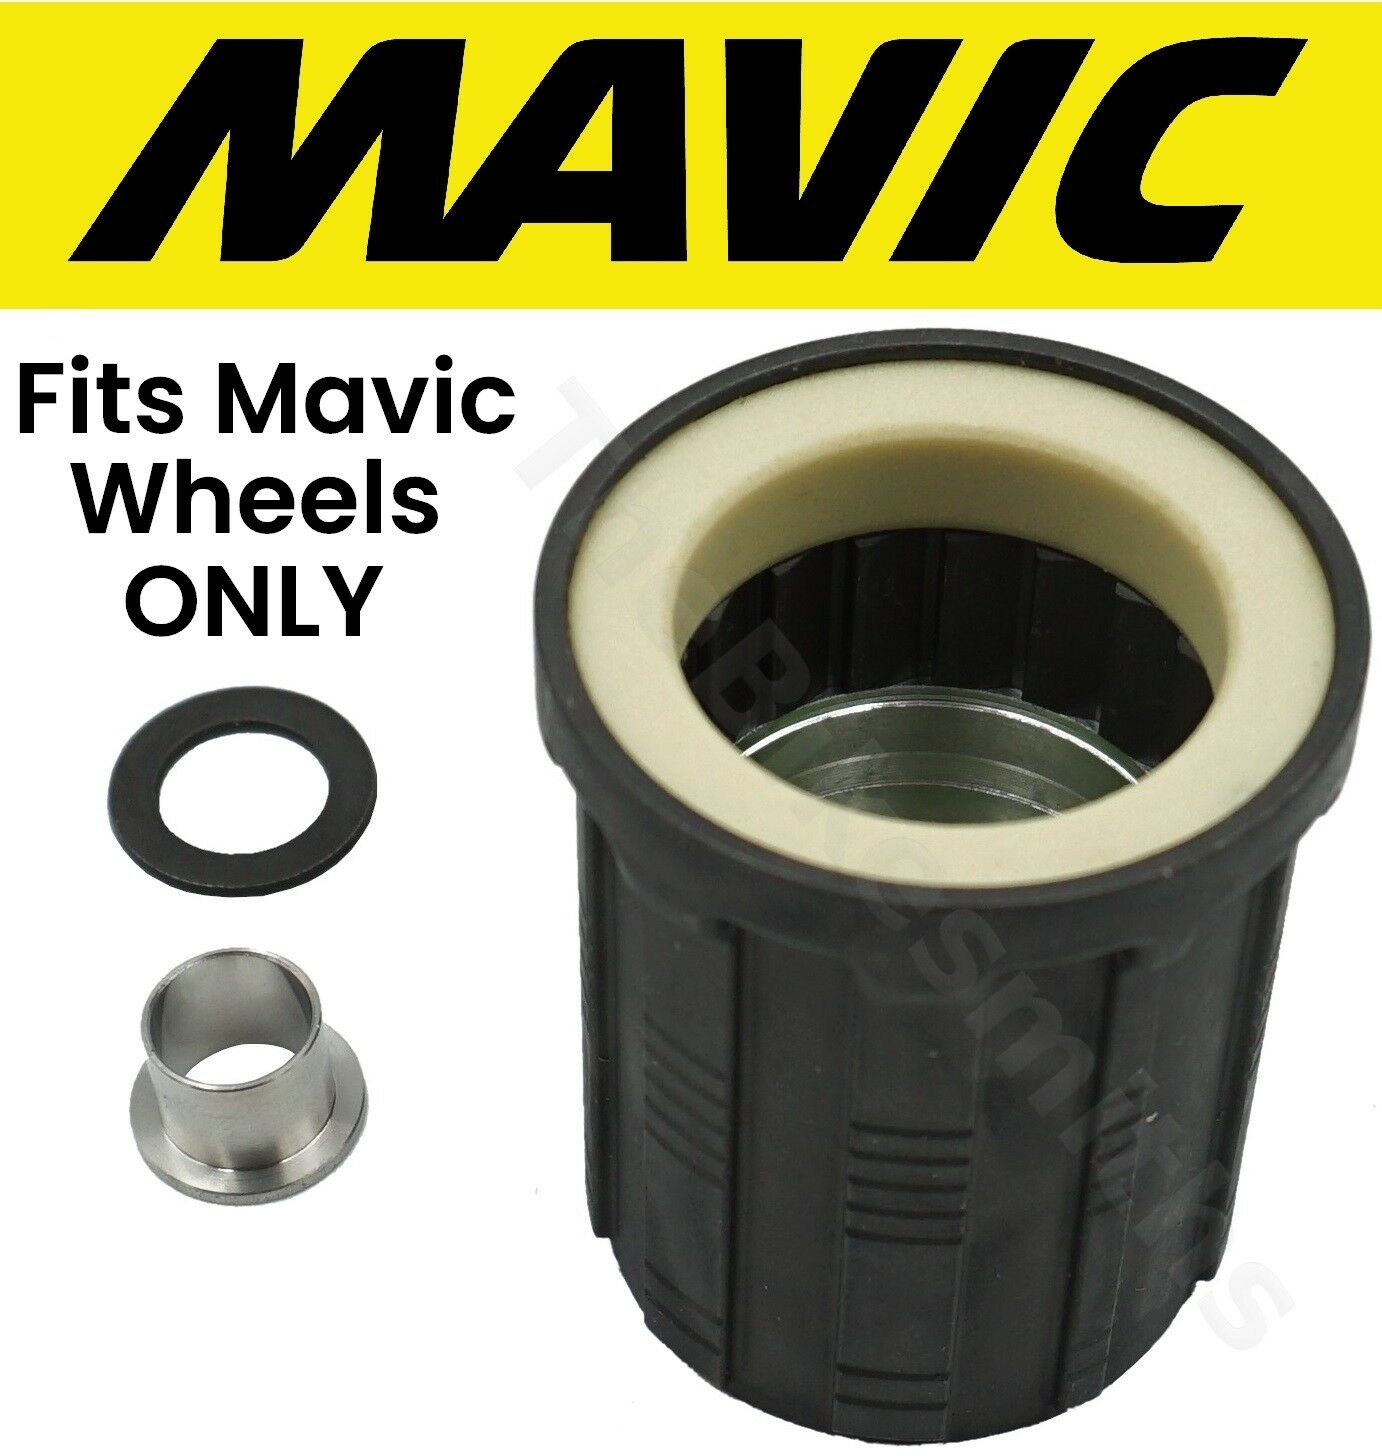 Mavic Freehub Body for Wheels w Shimano Sram Sunrace 9-11 Speed Bike Cassettes